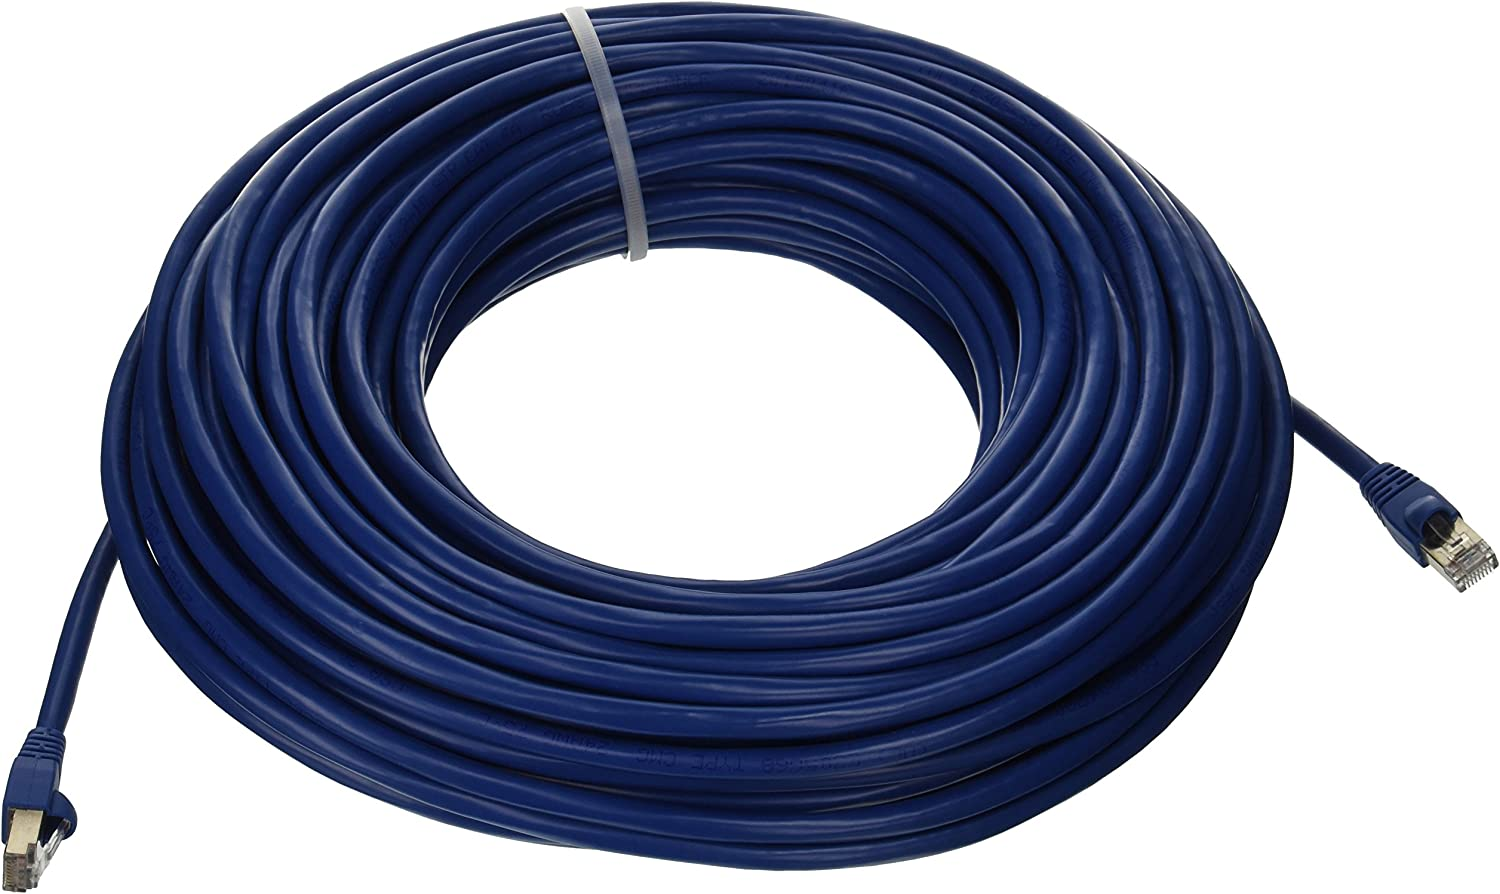 Blue 100/% Copper 24Awg UTP Cat5 Patch Cable 100 Ft,